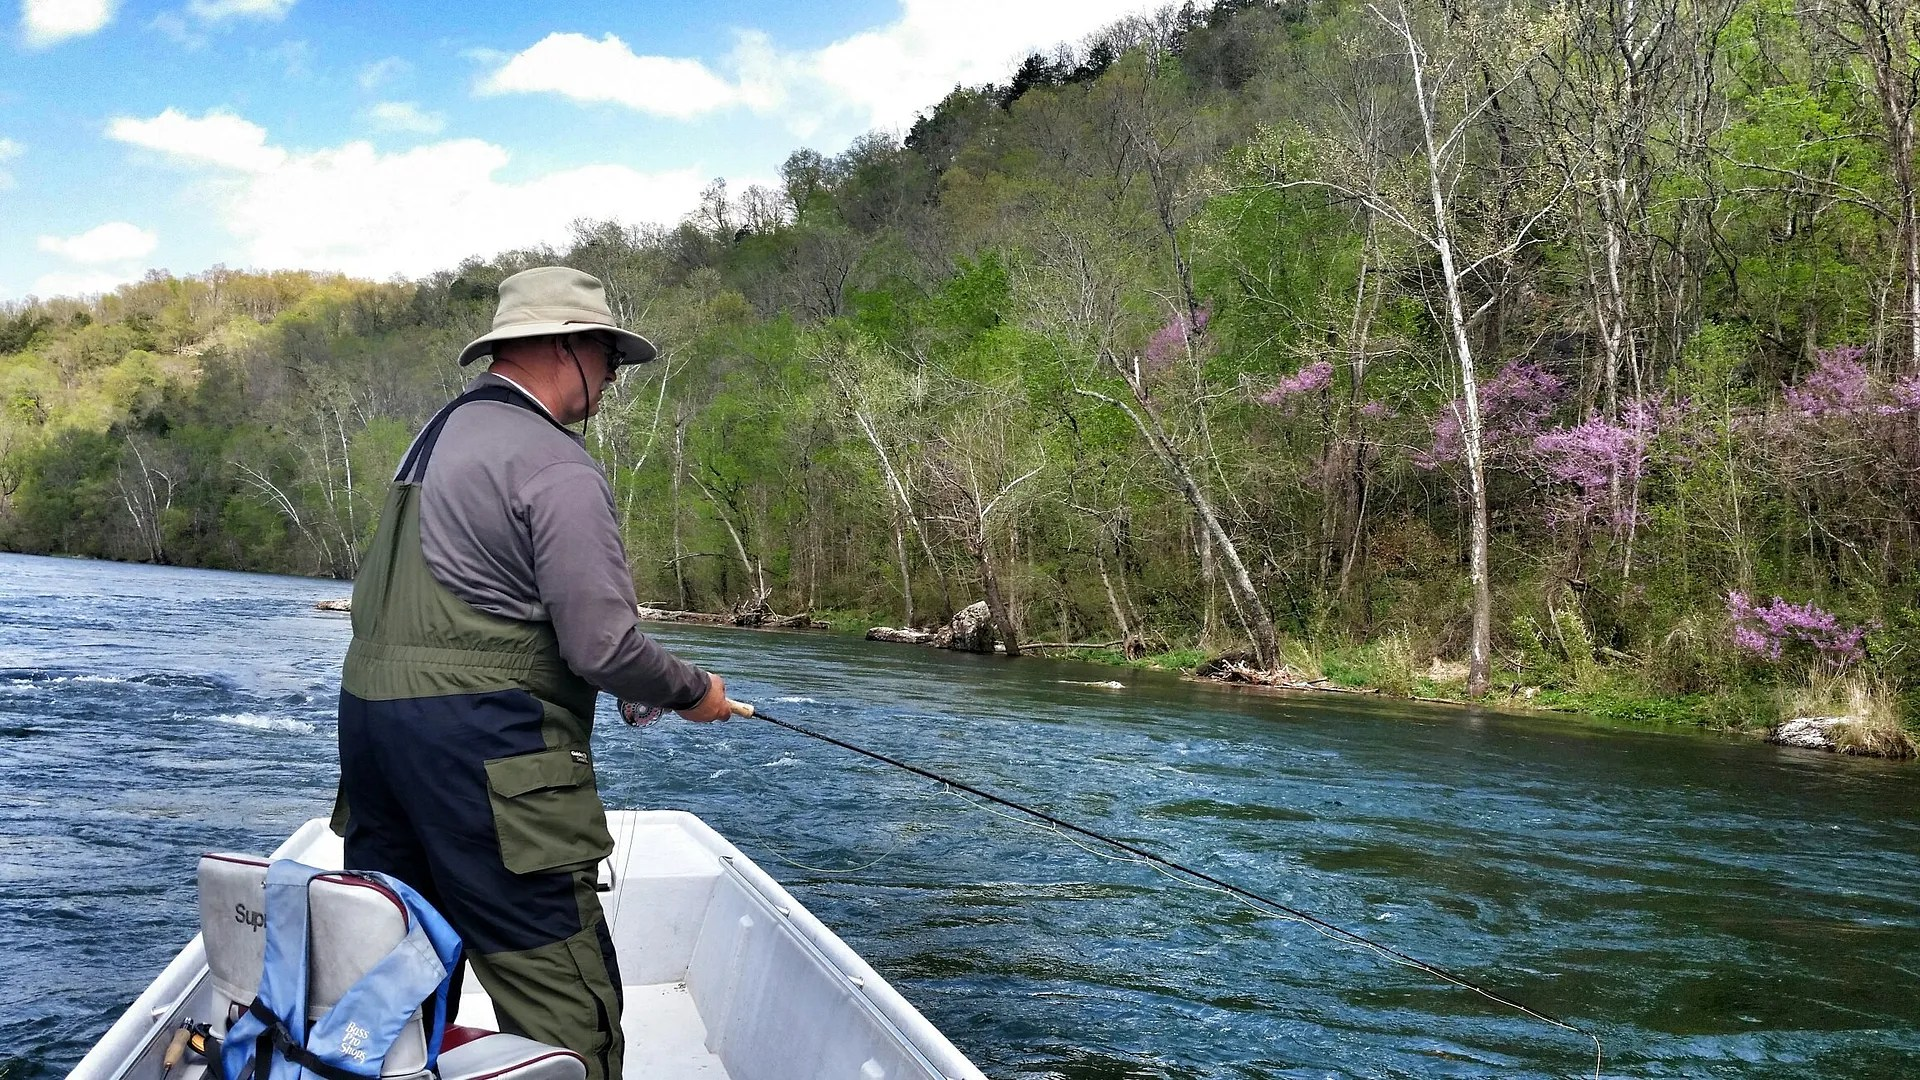 Dally S Fly Fishing Report 4 9 15 The Ozark Fly Fisher